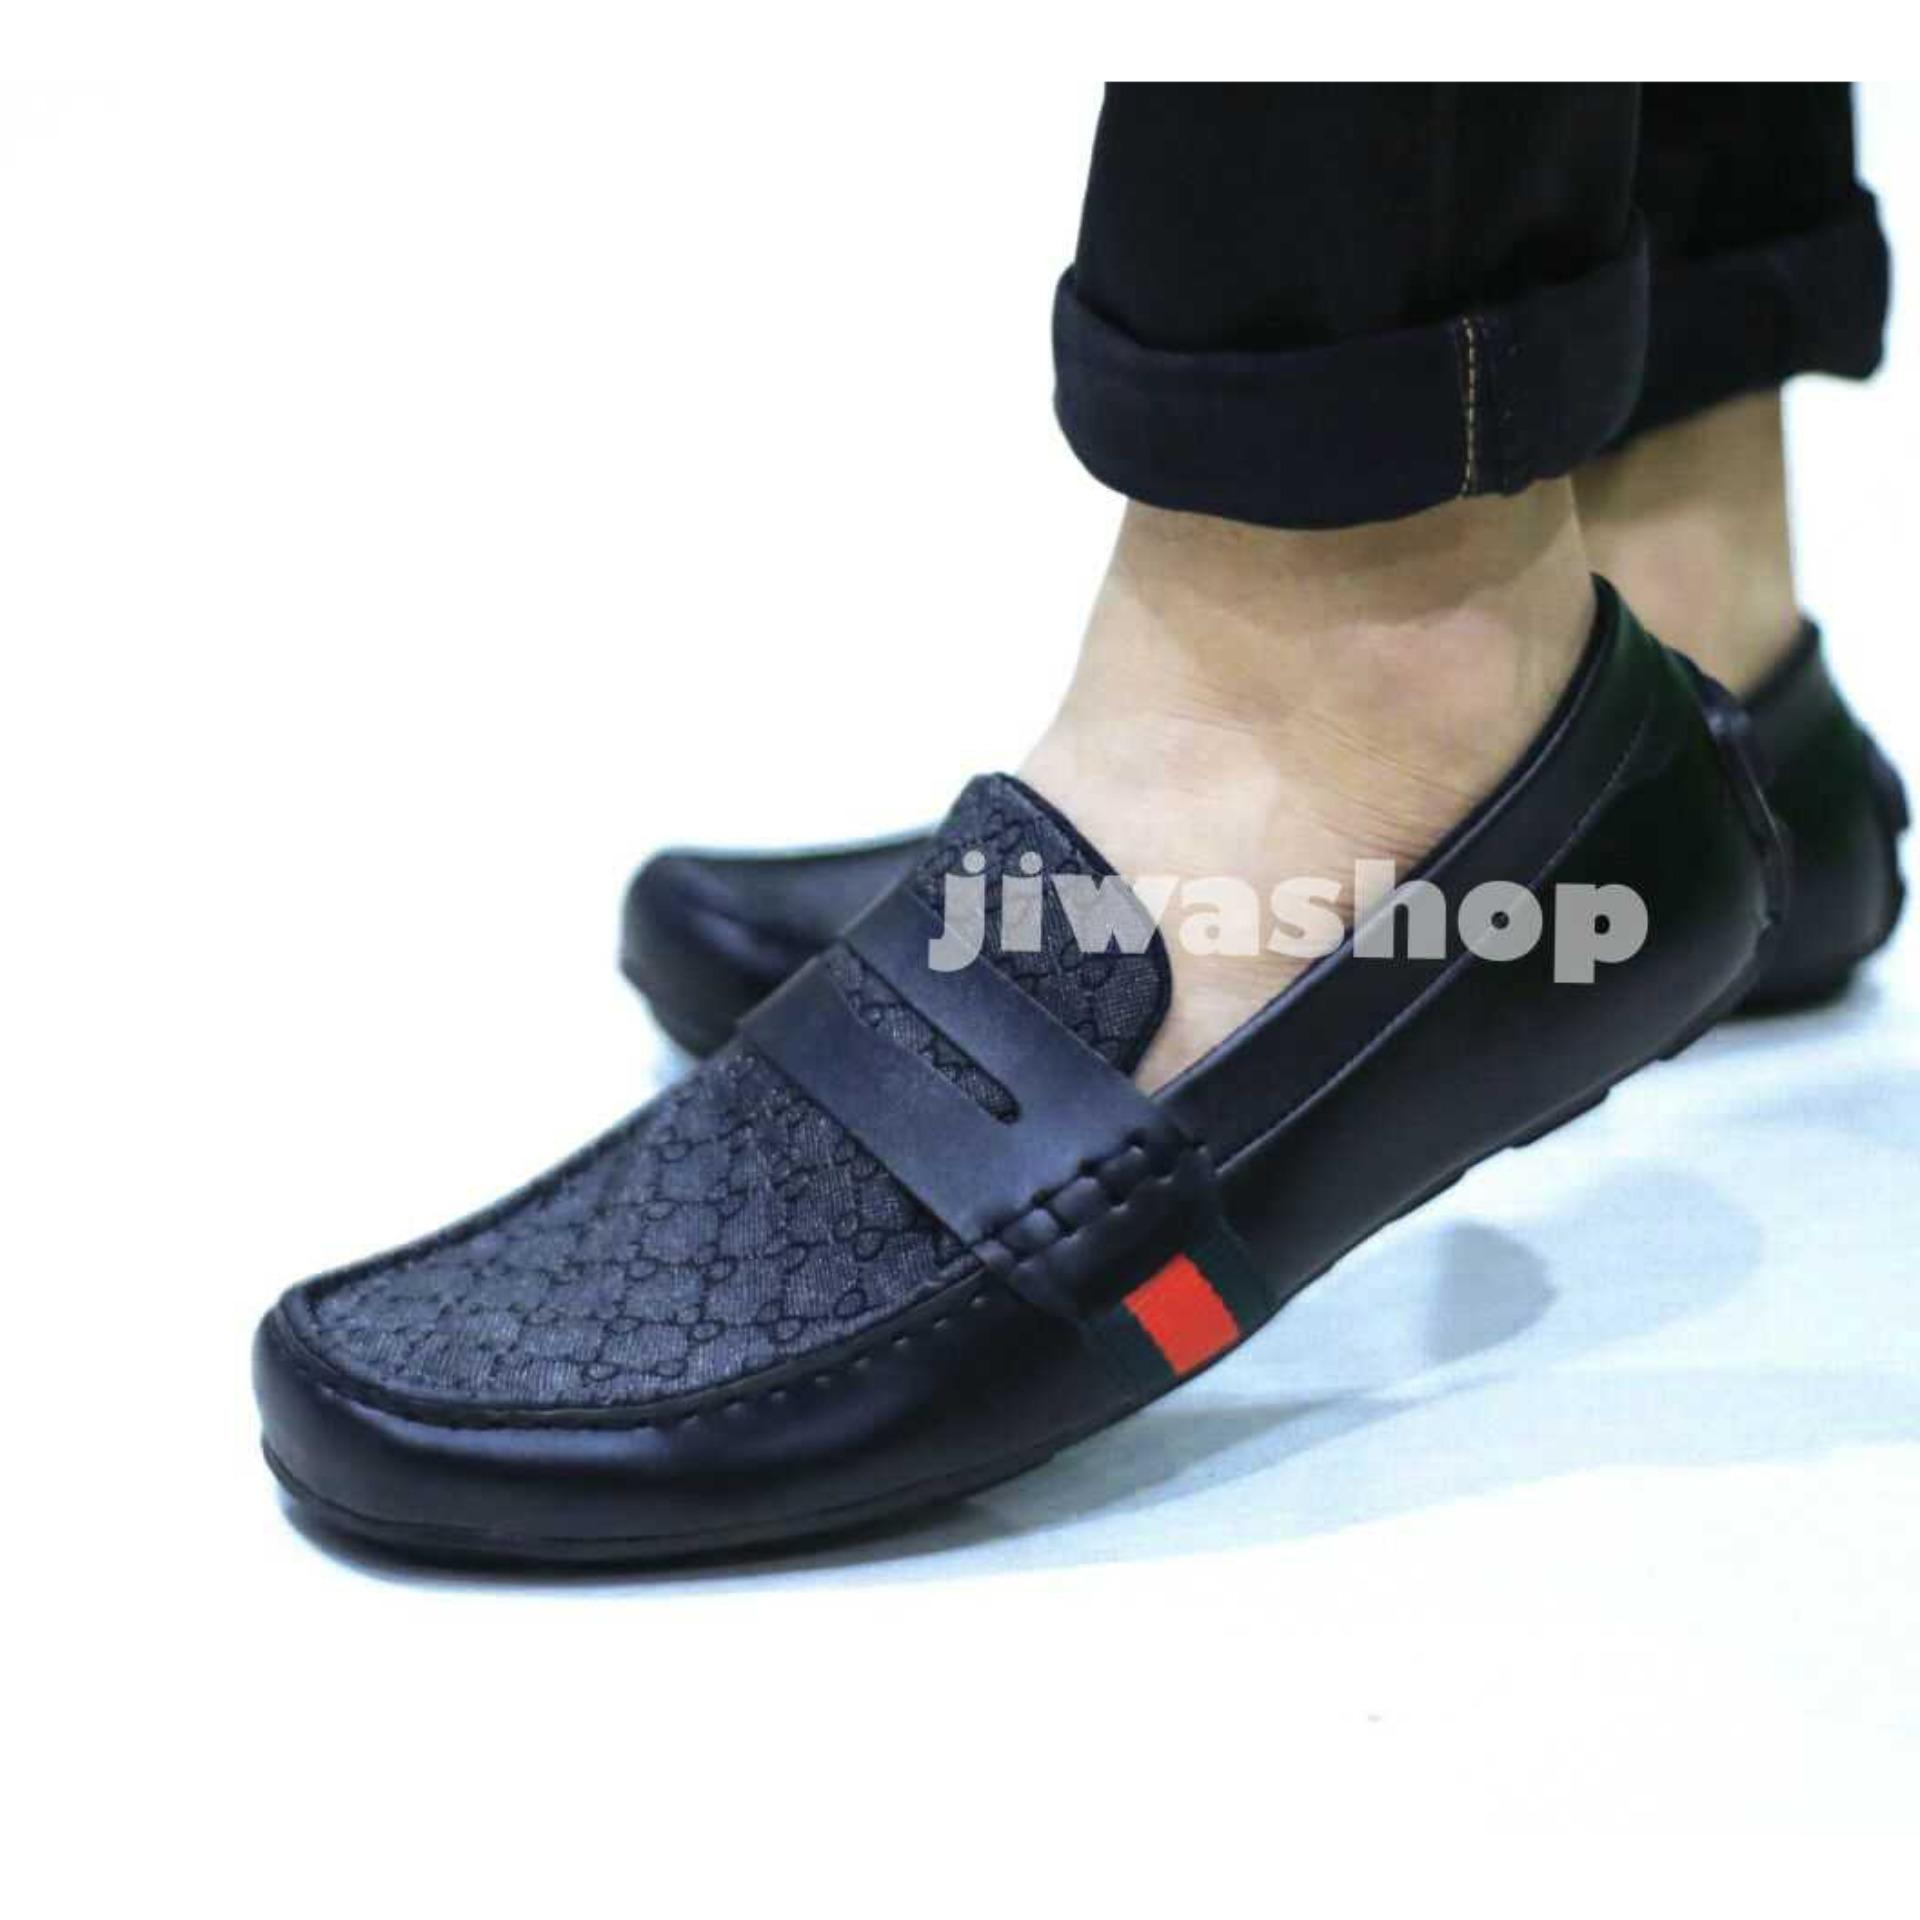 Size 39-43 sepatu casual guci pria casual formal mocasin slip on flat shoes slop  pria kickers loafers adidas 283ee121a0